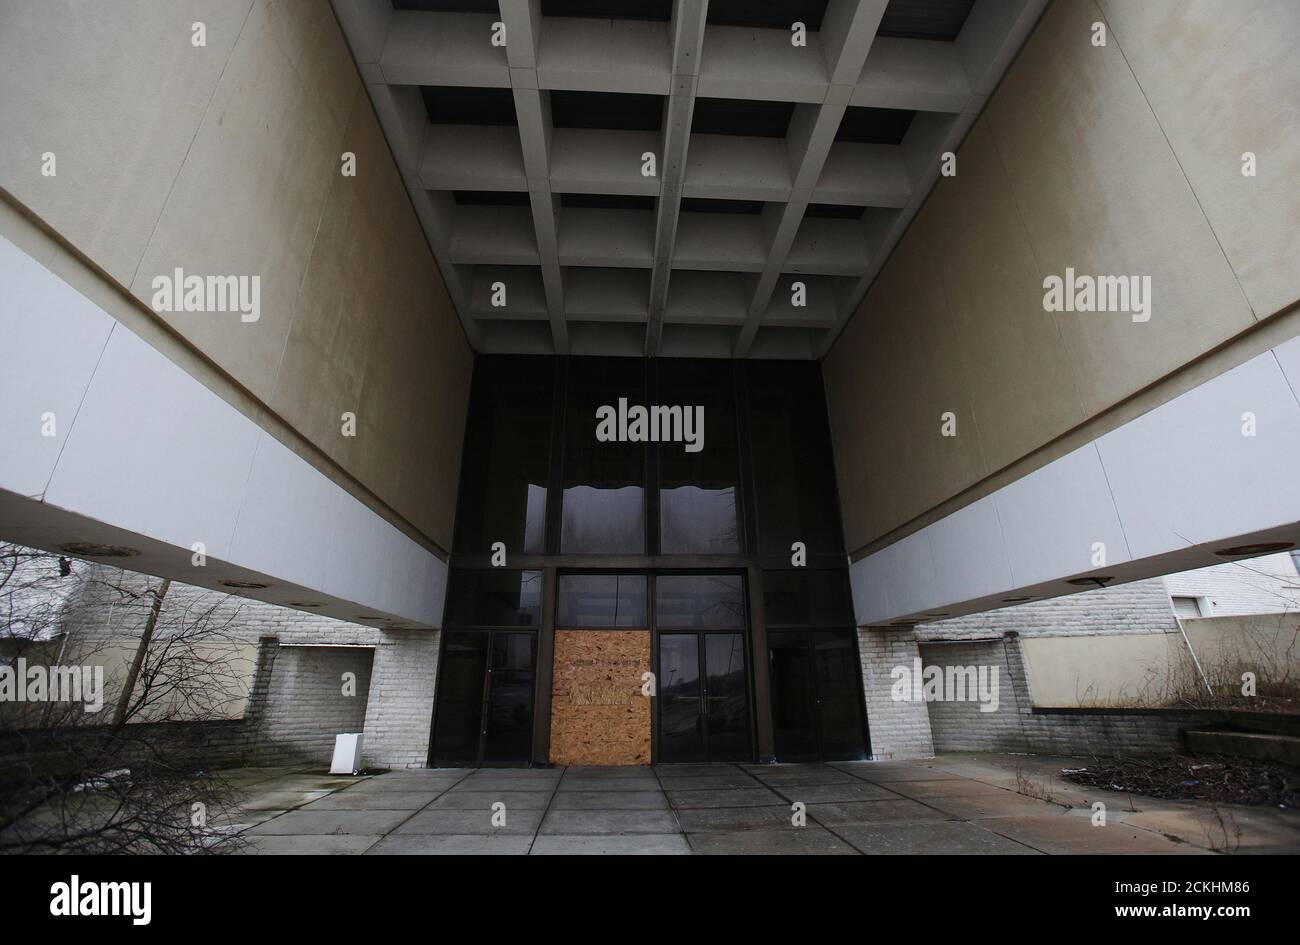 cleveland ohio suburb high resolution stock photography and images alamy https www alamy com the entrance to the randall park mall is seen boarded up in the north randall suburb of cleveland ohio march 1 2012 the mall that was once one of the largest in the country closed its door in march of 2009 reutersshannon stapleton united states tags business society image373485286 html